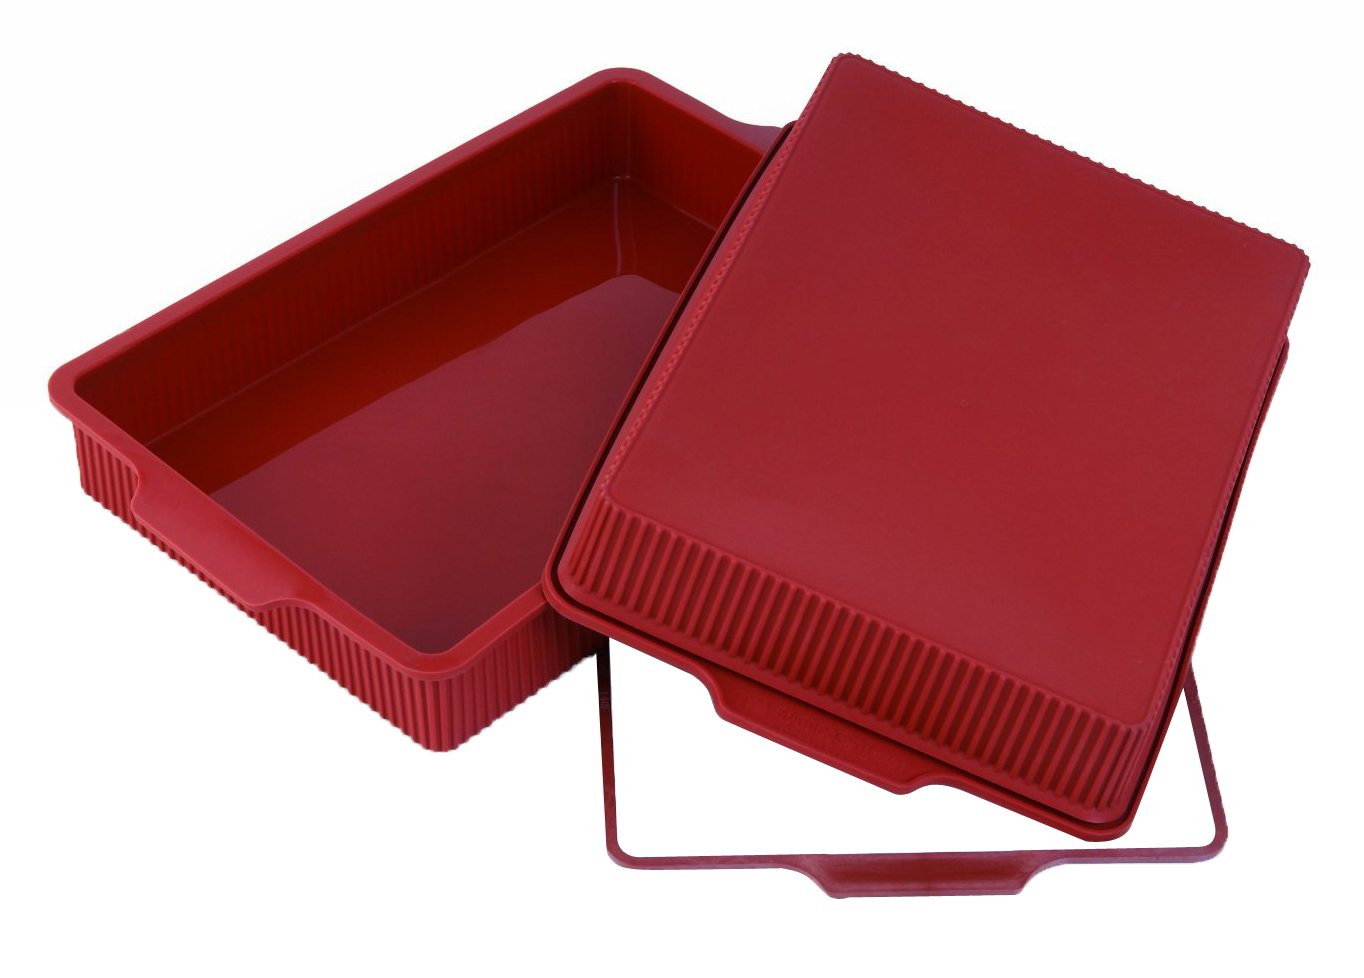 Silikomart SFT332/C Silicone Classic Collection Lasagna Pan, 13 by 9-Inch by Silikomart